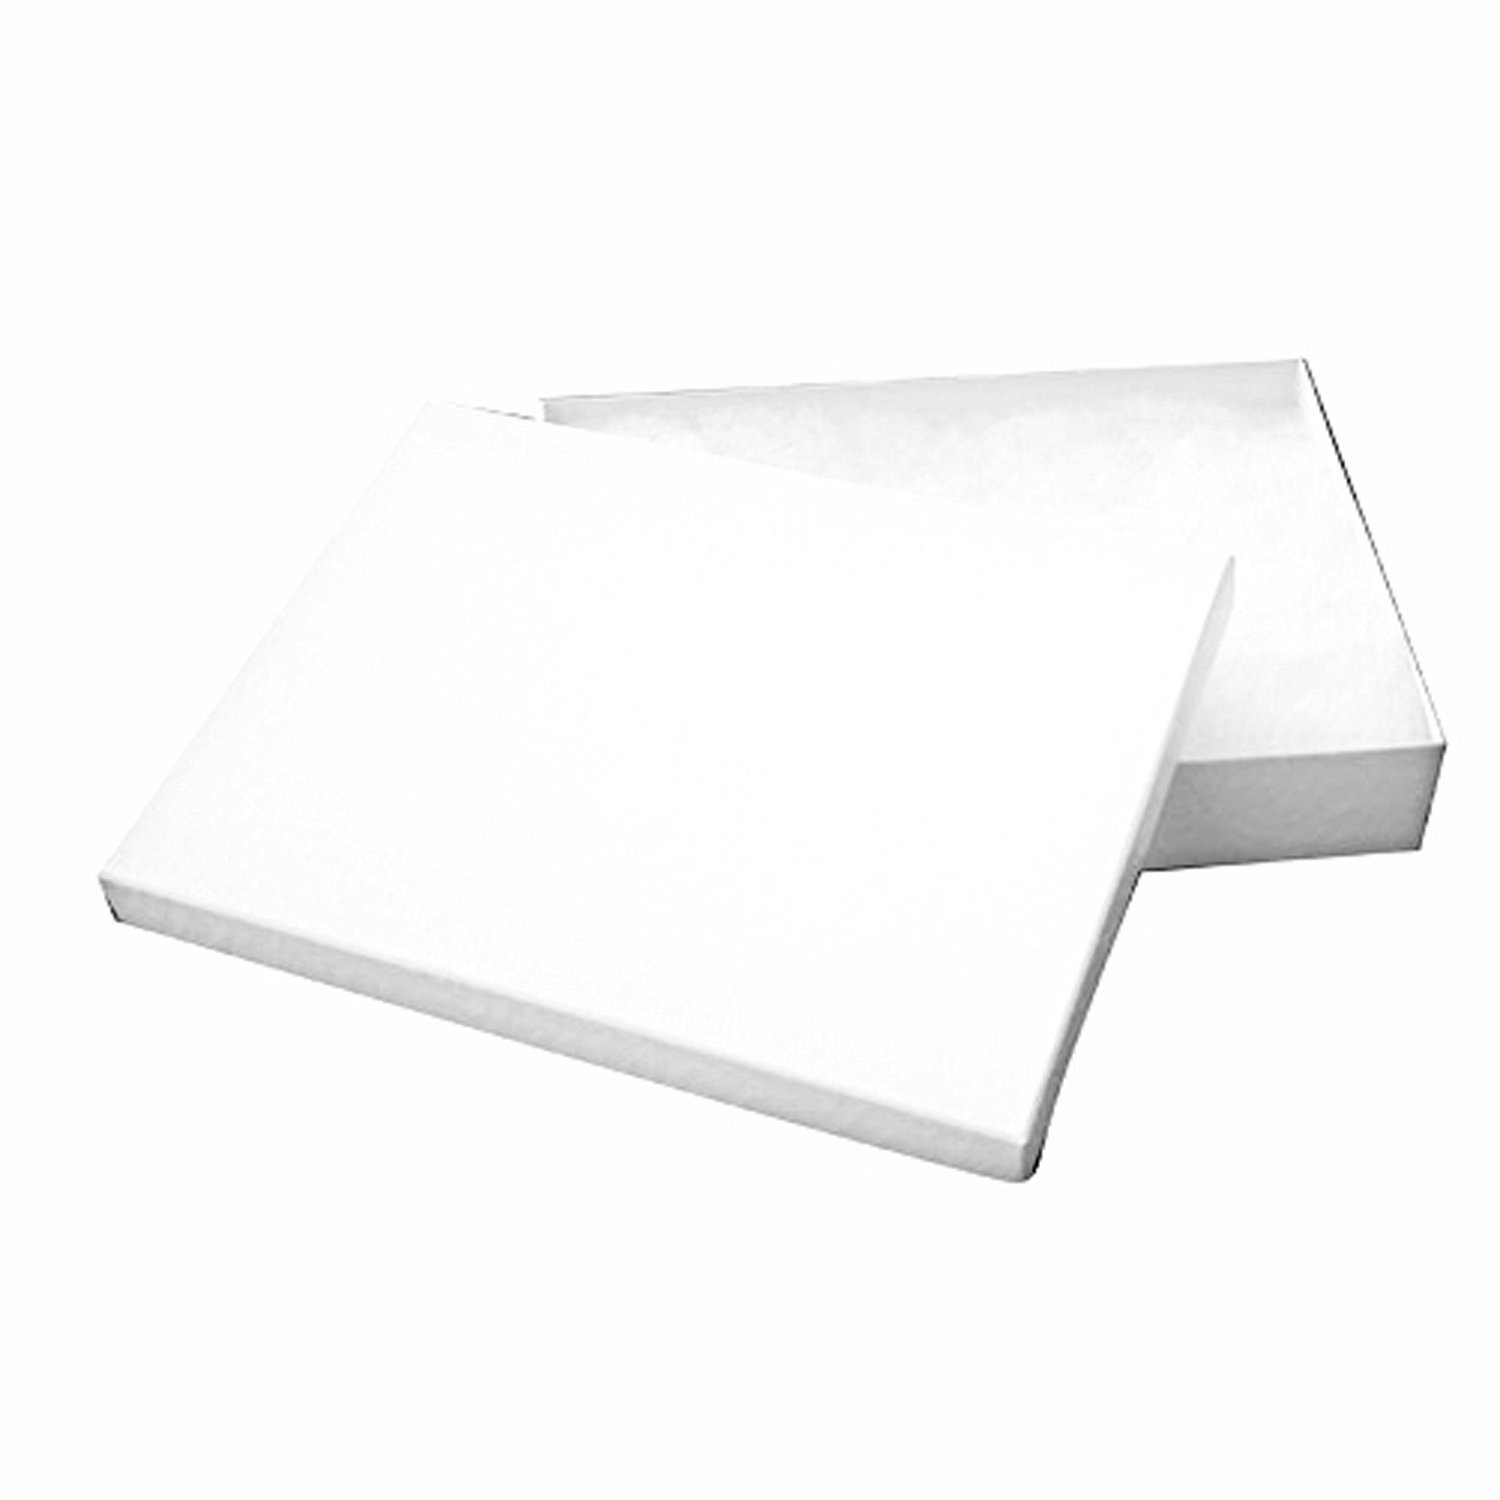 Tioneer Lot of 25 pcs 7 1/8 x 5 1/8 x 1 1/8 White Swirl Cotton Filled Jewelry Boxes